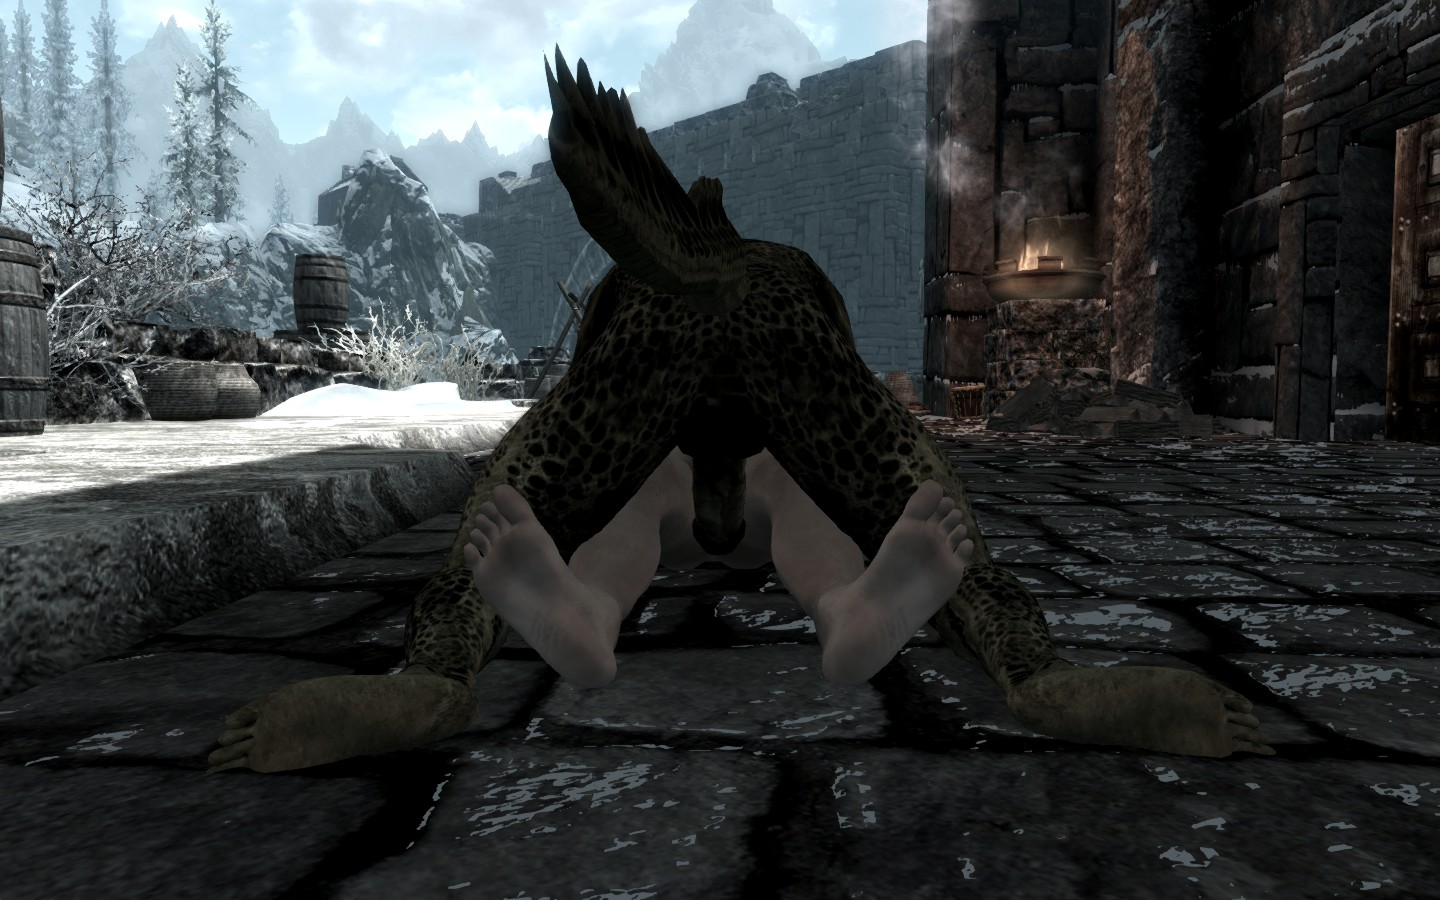 Argonian sex story softcore download